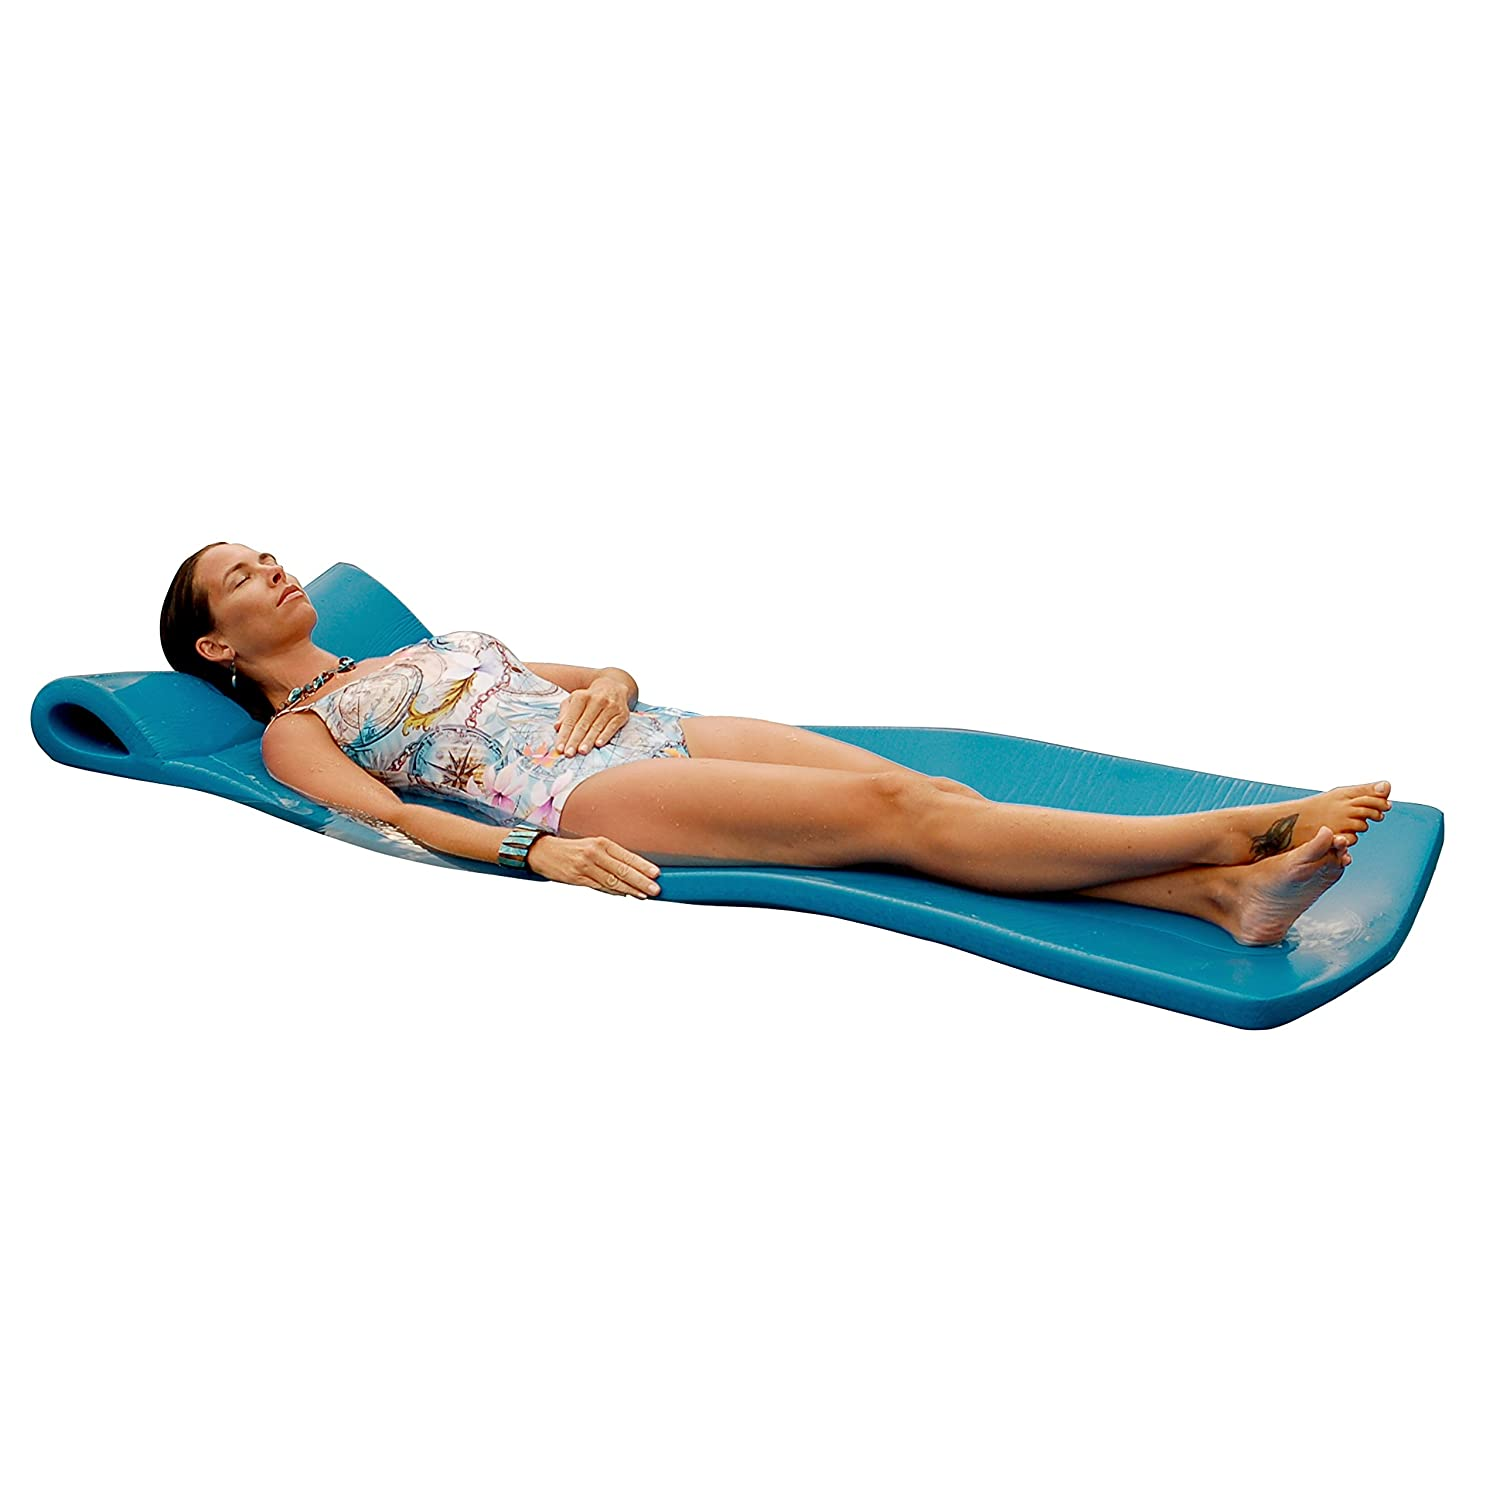 Sunray pool float swimming raft foam texas recreation for Swimming pool loungers